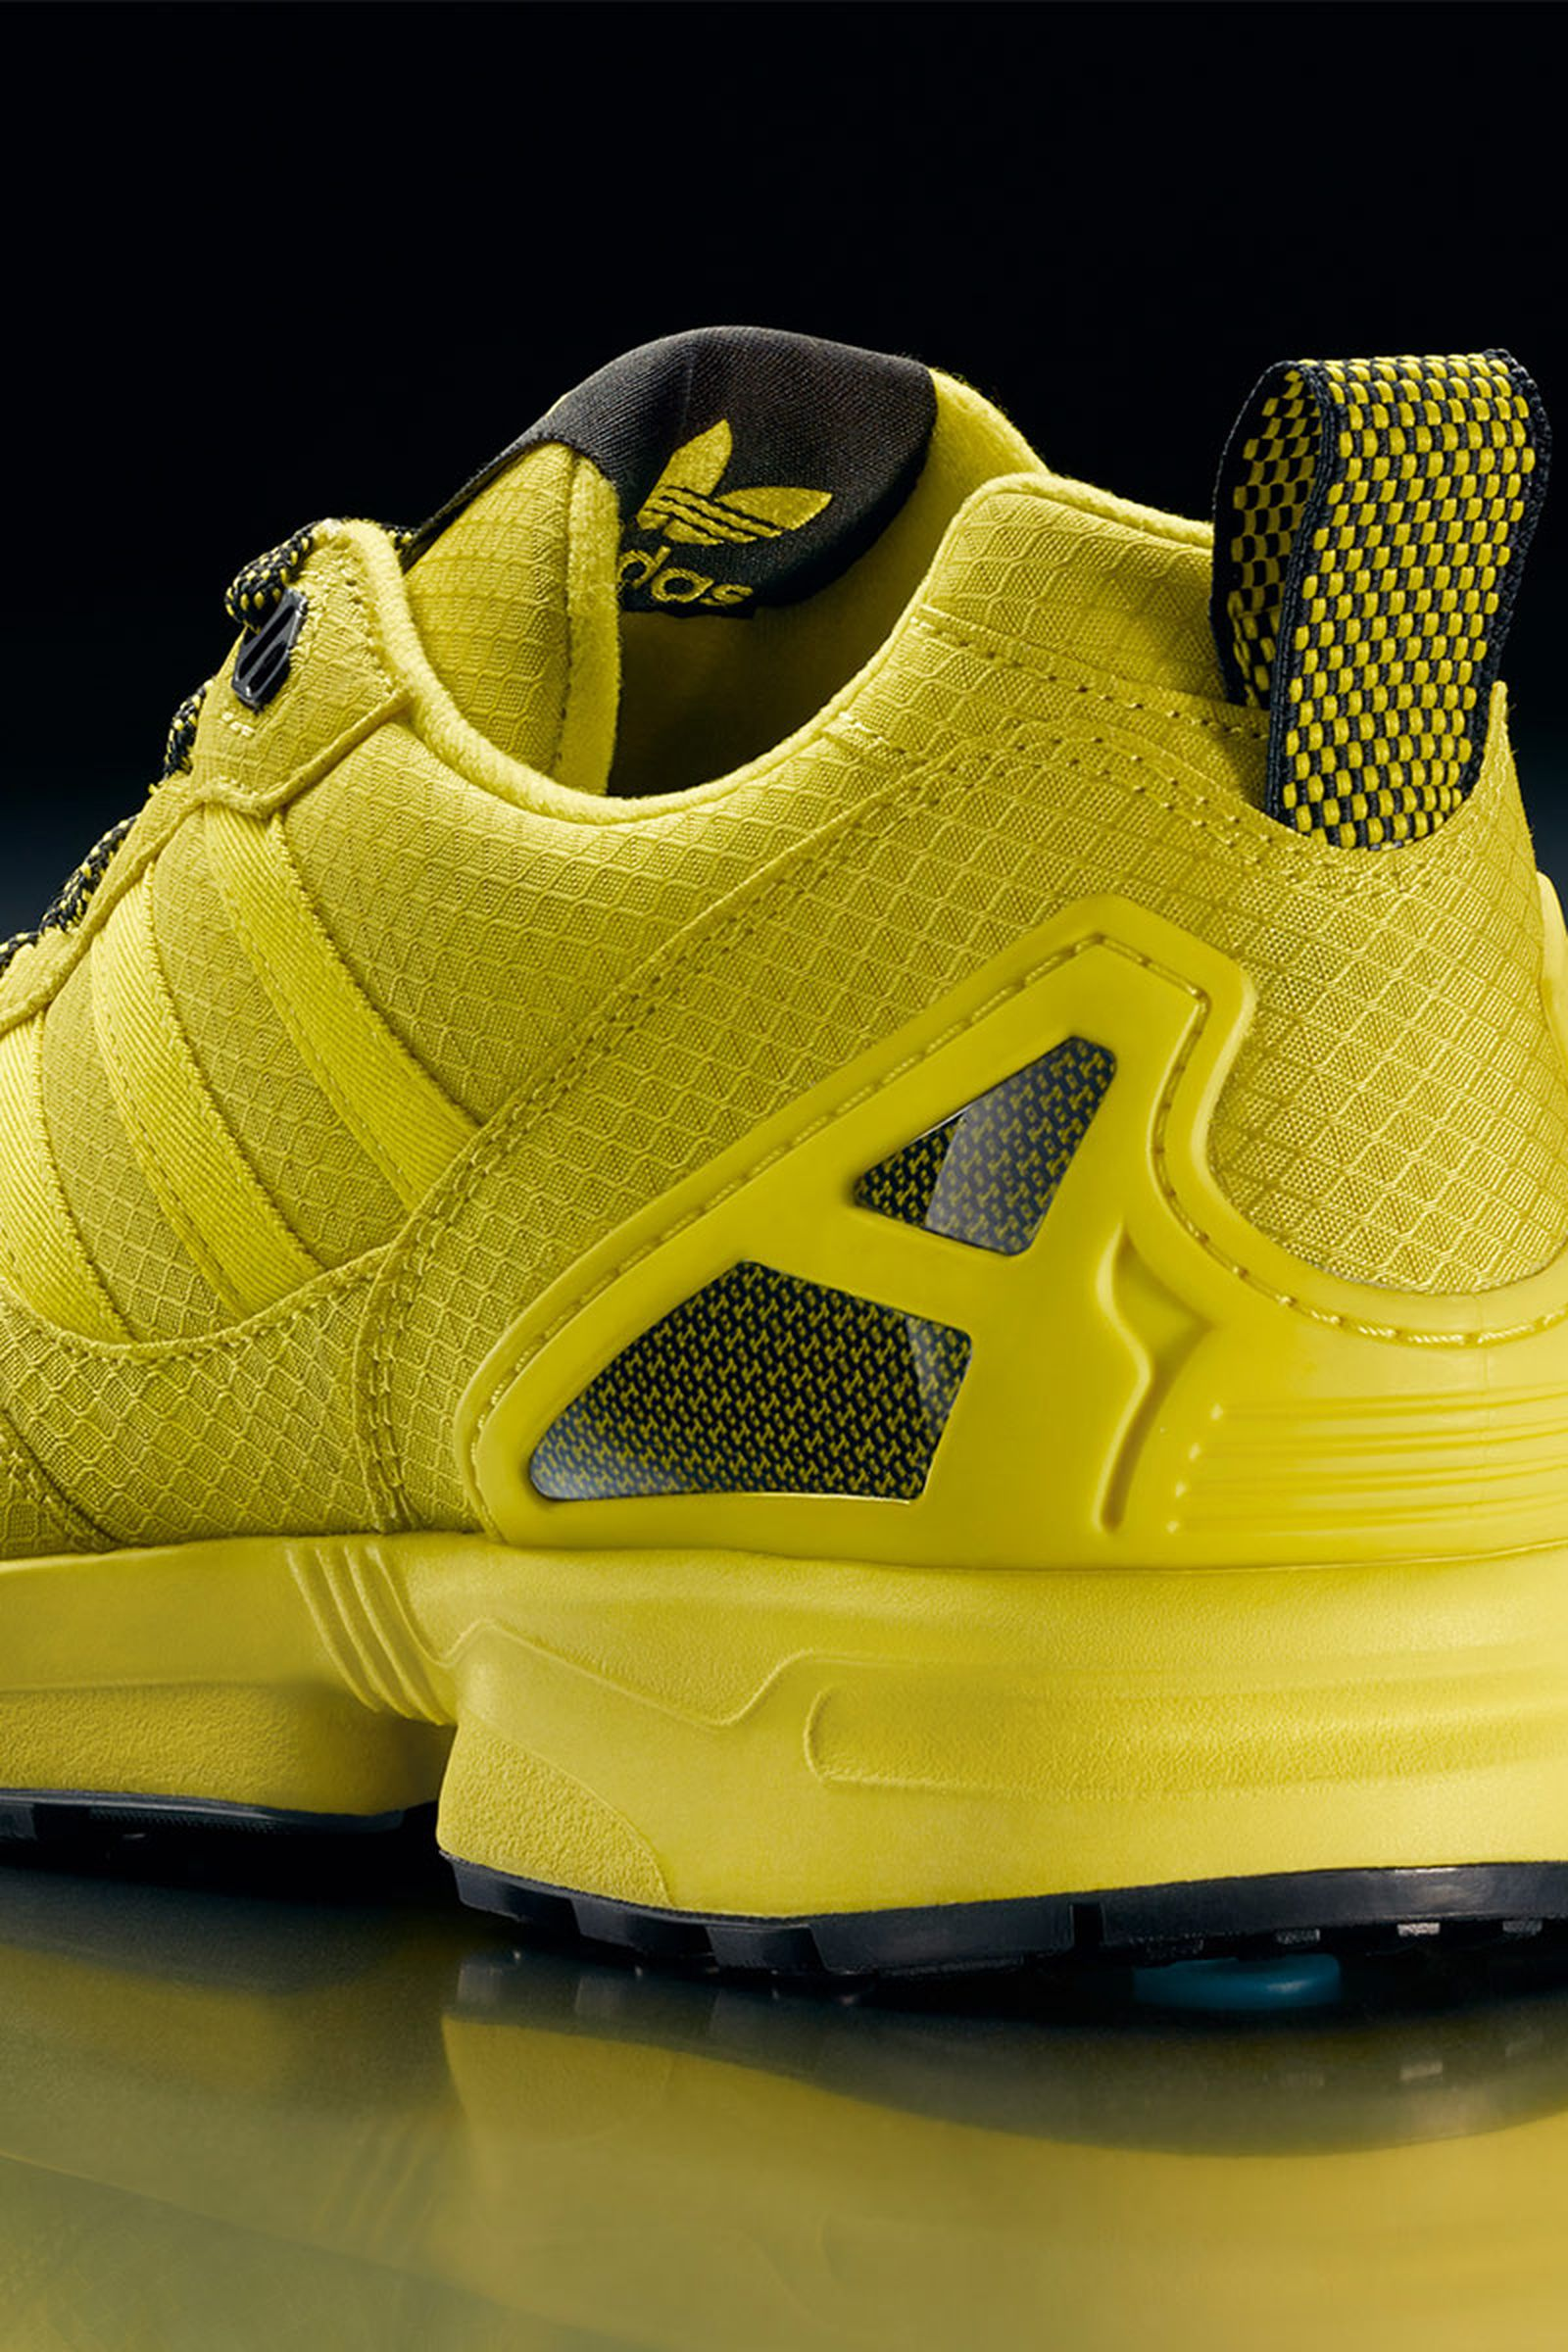 adidas-zx-5000-torsion-release-date-price-03